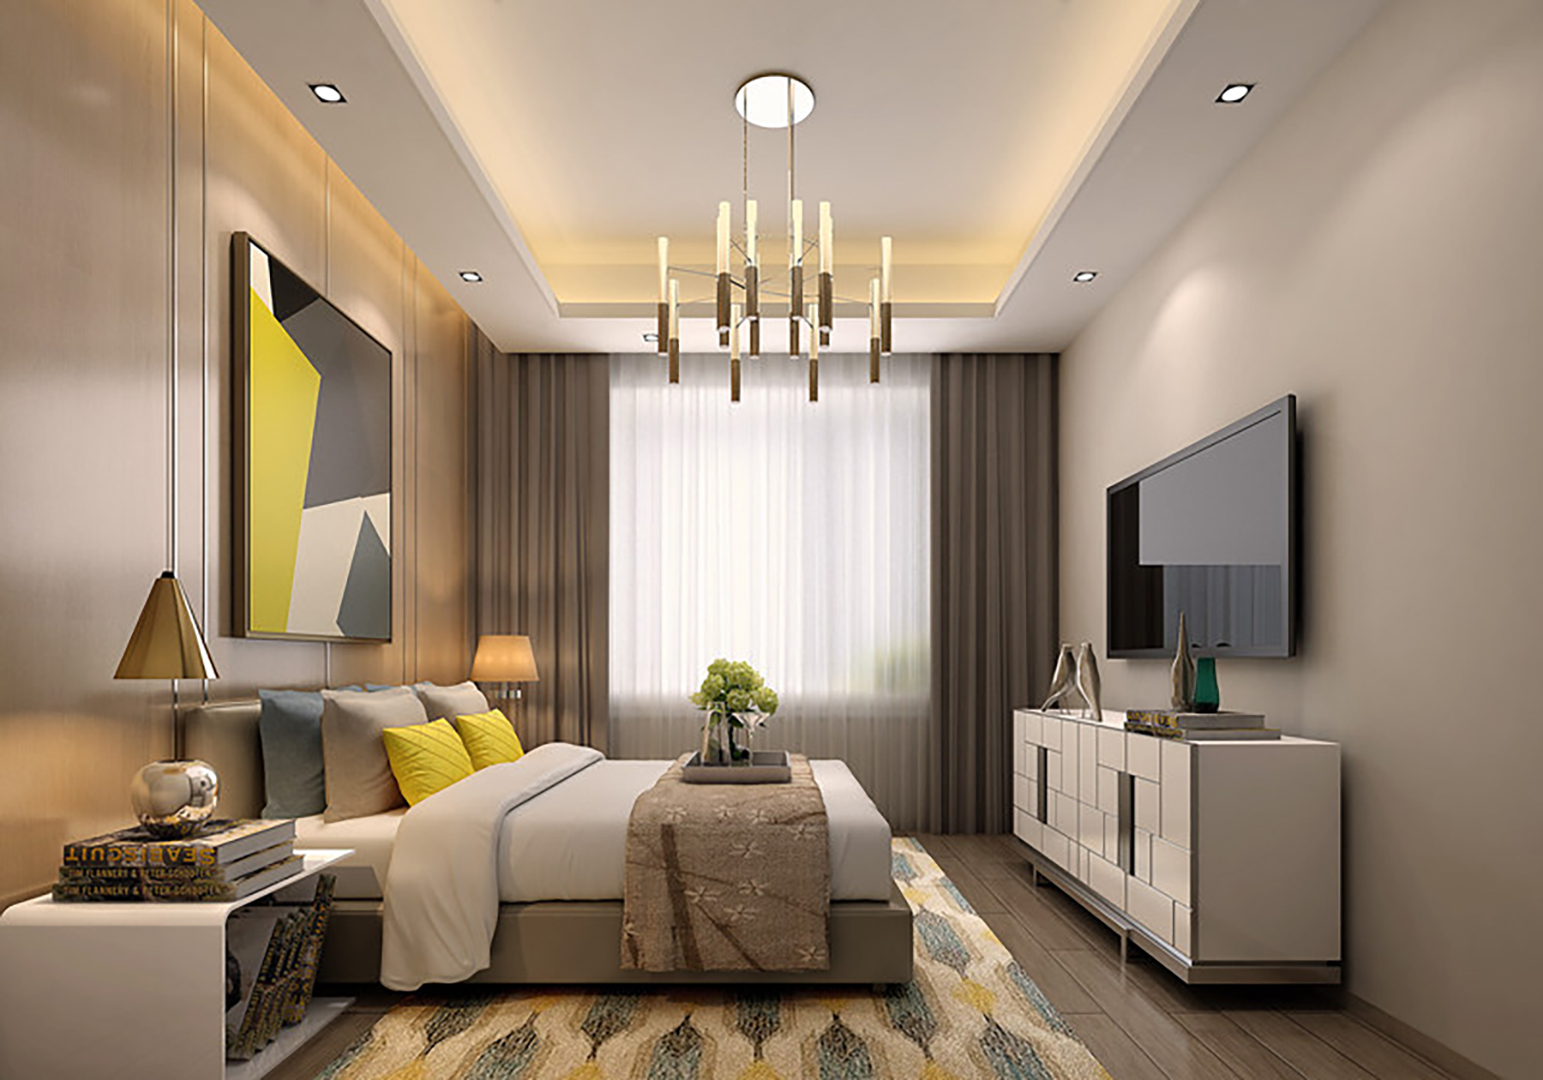 90-3-model-house-interior-design-of-qingdao-international-coast